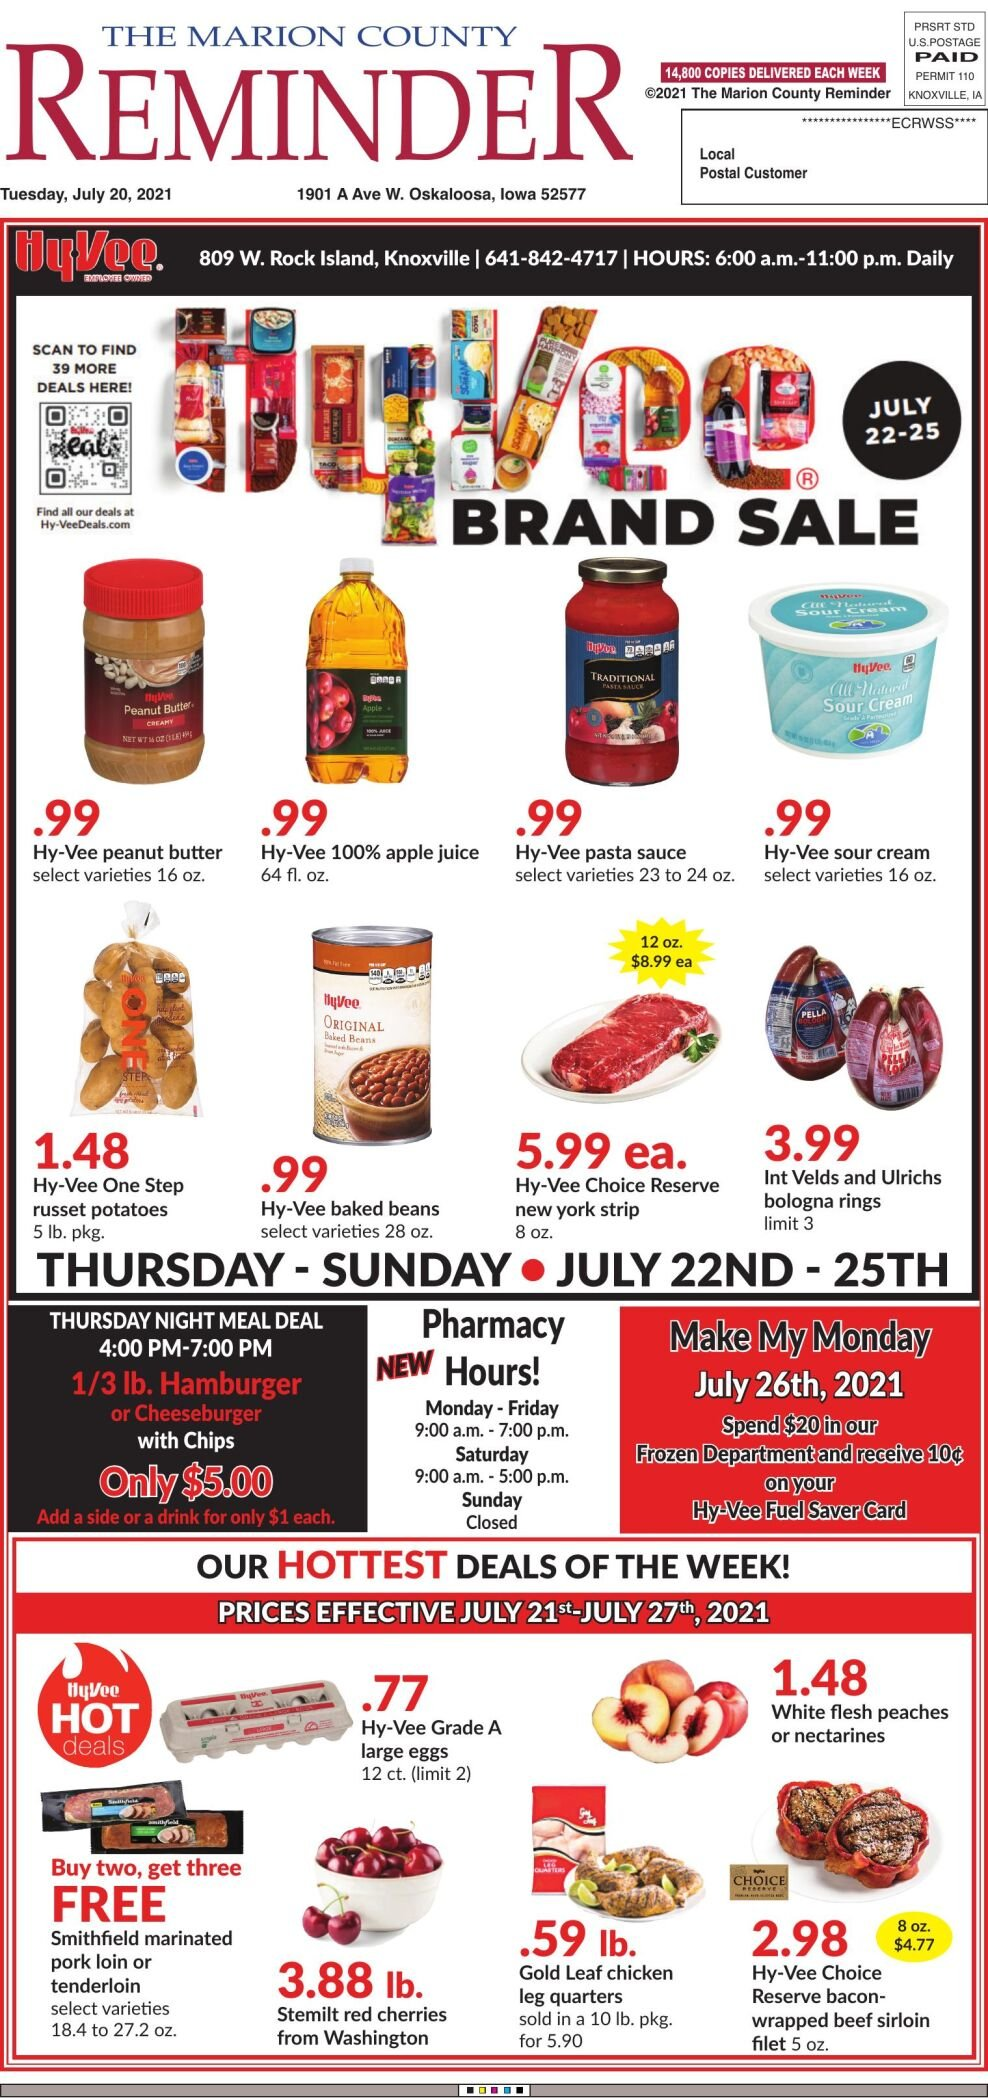 The Marion County Reminder week of 07/20/21